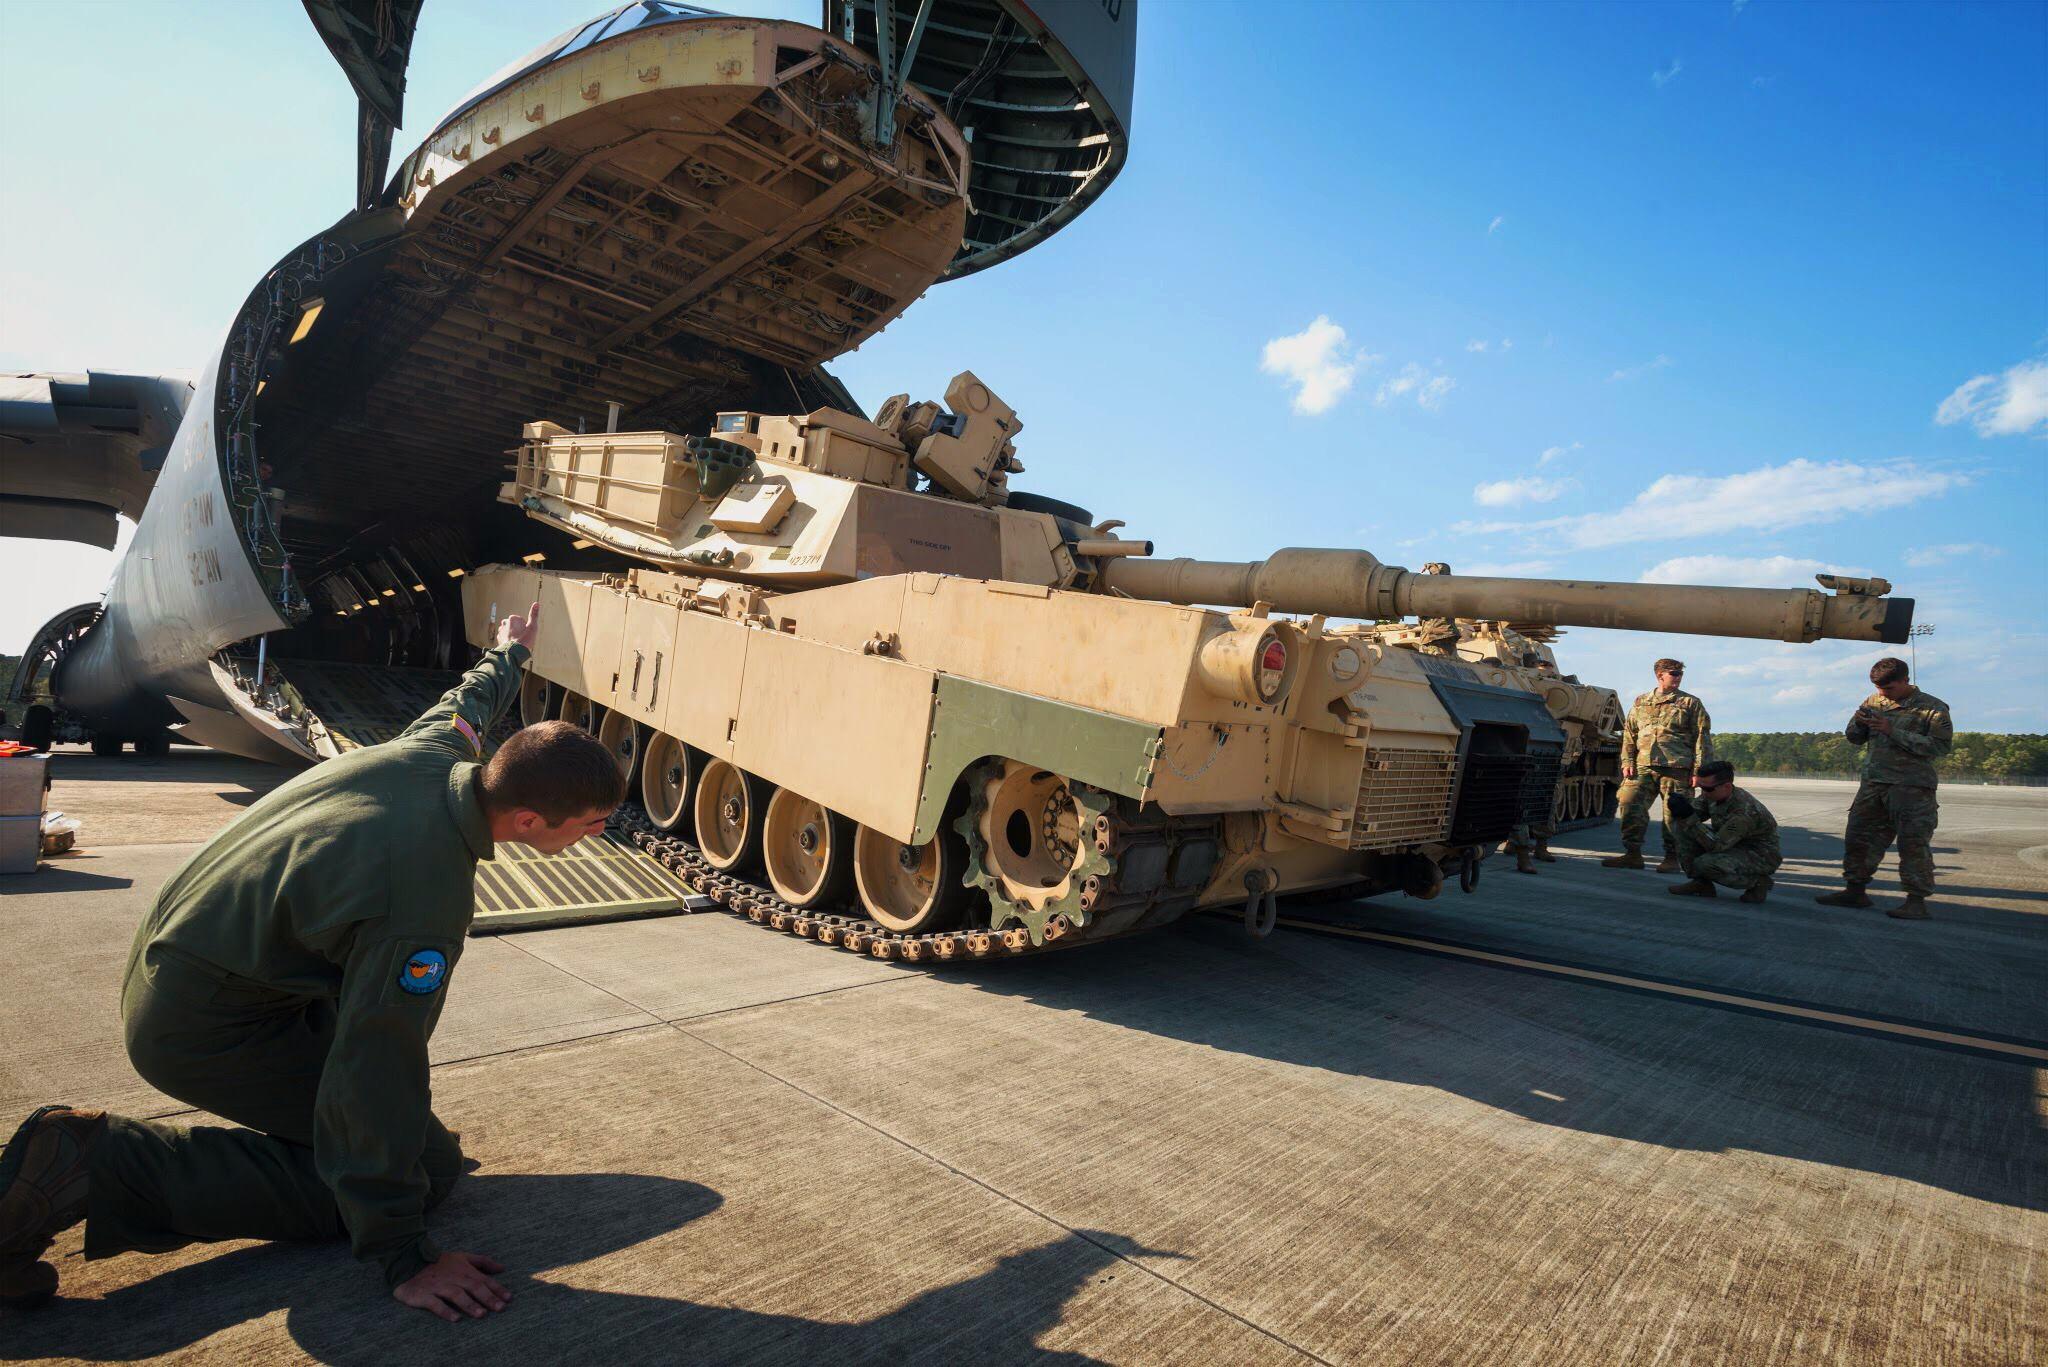 """Soldiers of the 2nd Battalion, 7th Infantry Regiment, 1st Armored Brigade Combat Team, 3rd Infantry Division load a M1A1 Abrams tank onto a C5 """"Super Galaxy"""" at Fort Stewart Hunter Army Airfield, Ga. The battalion is rehearsing air load operations for the division's Immediate Ready Company, responsible to maintaining readiness in support of the Global Response Force mission to deploy within 18 hours of notification. (US Army Photo)"""